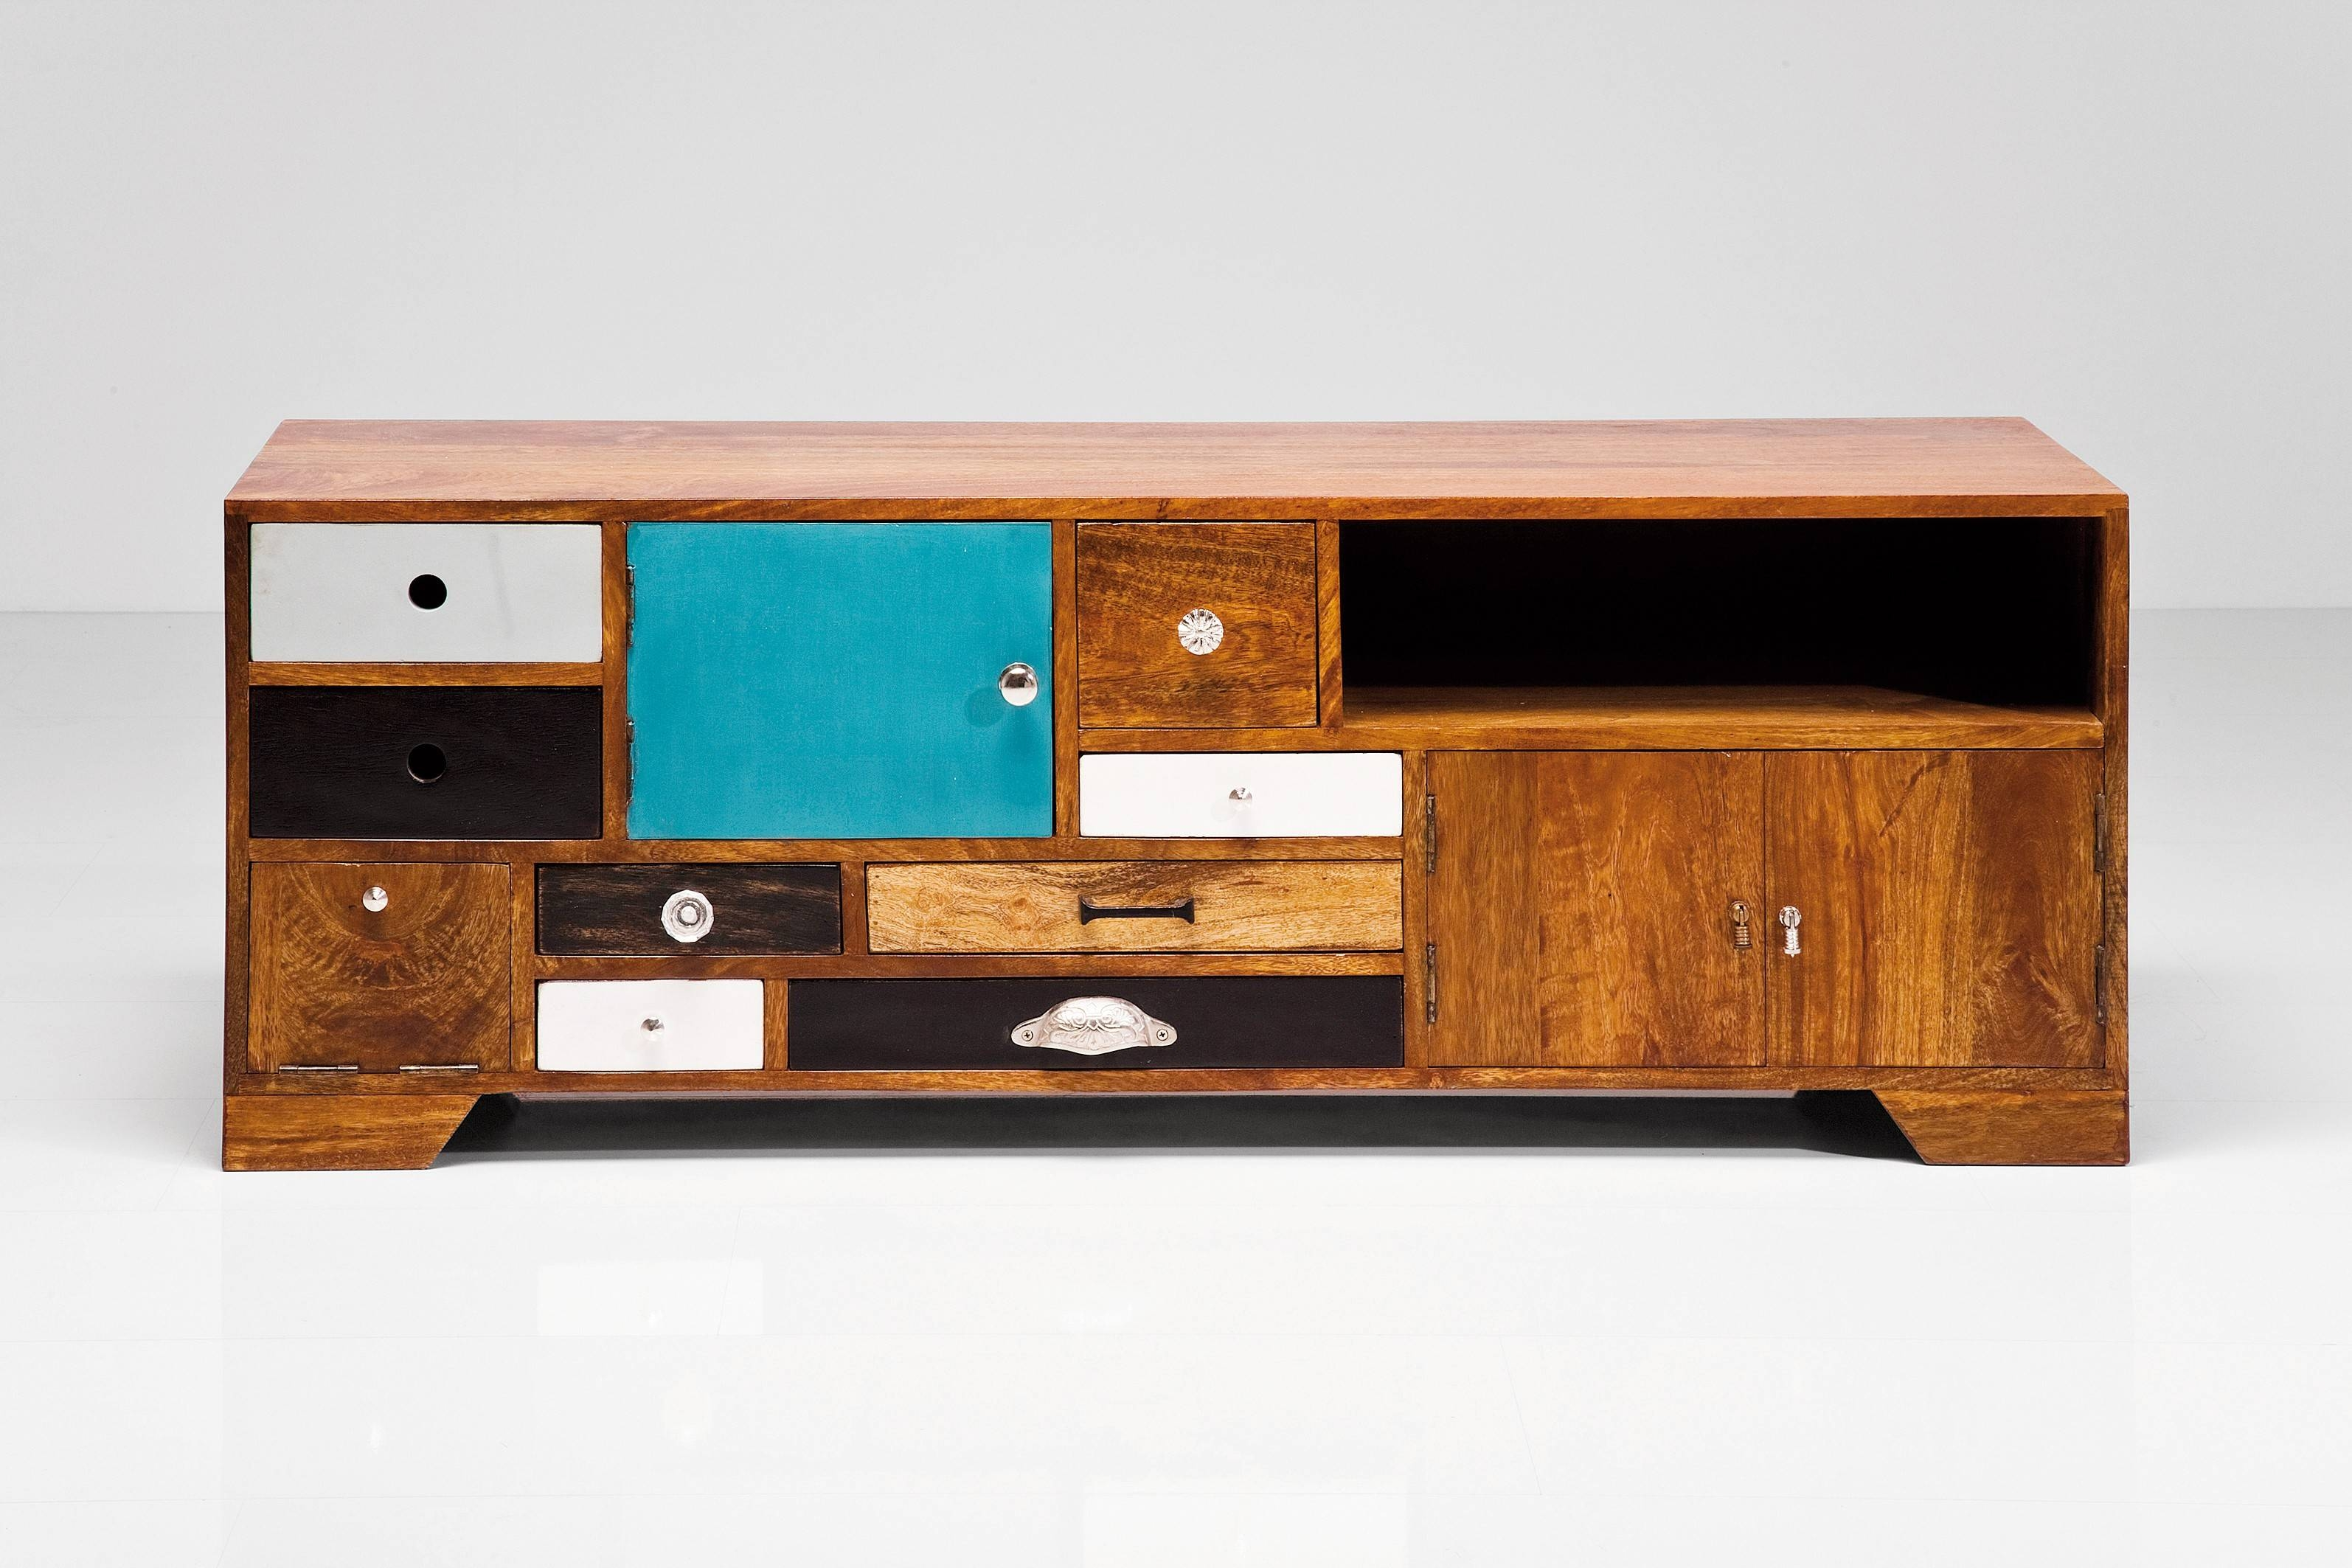 Upcycled Retro Sideboard And Media Uniti Love Retro | I Love Retro for Retro Sideboards (Image 27 of 30)